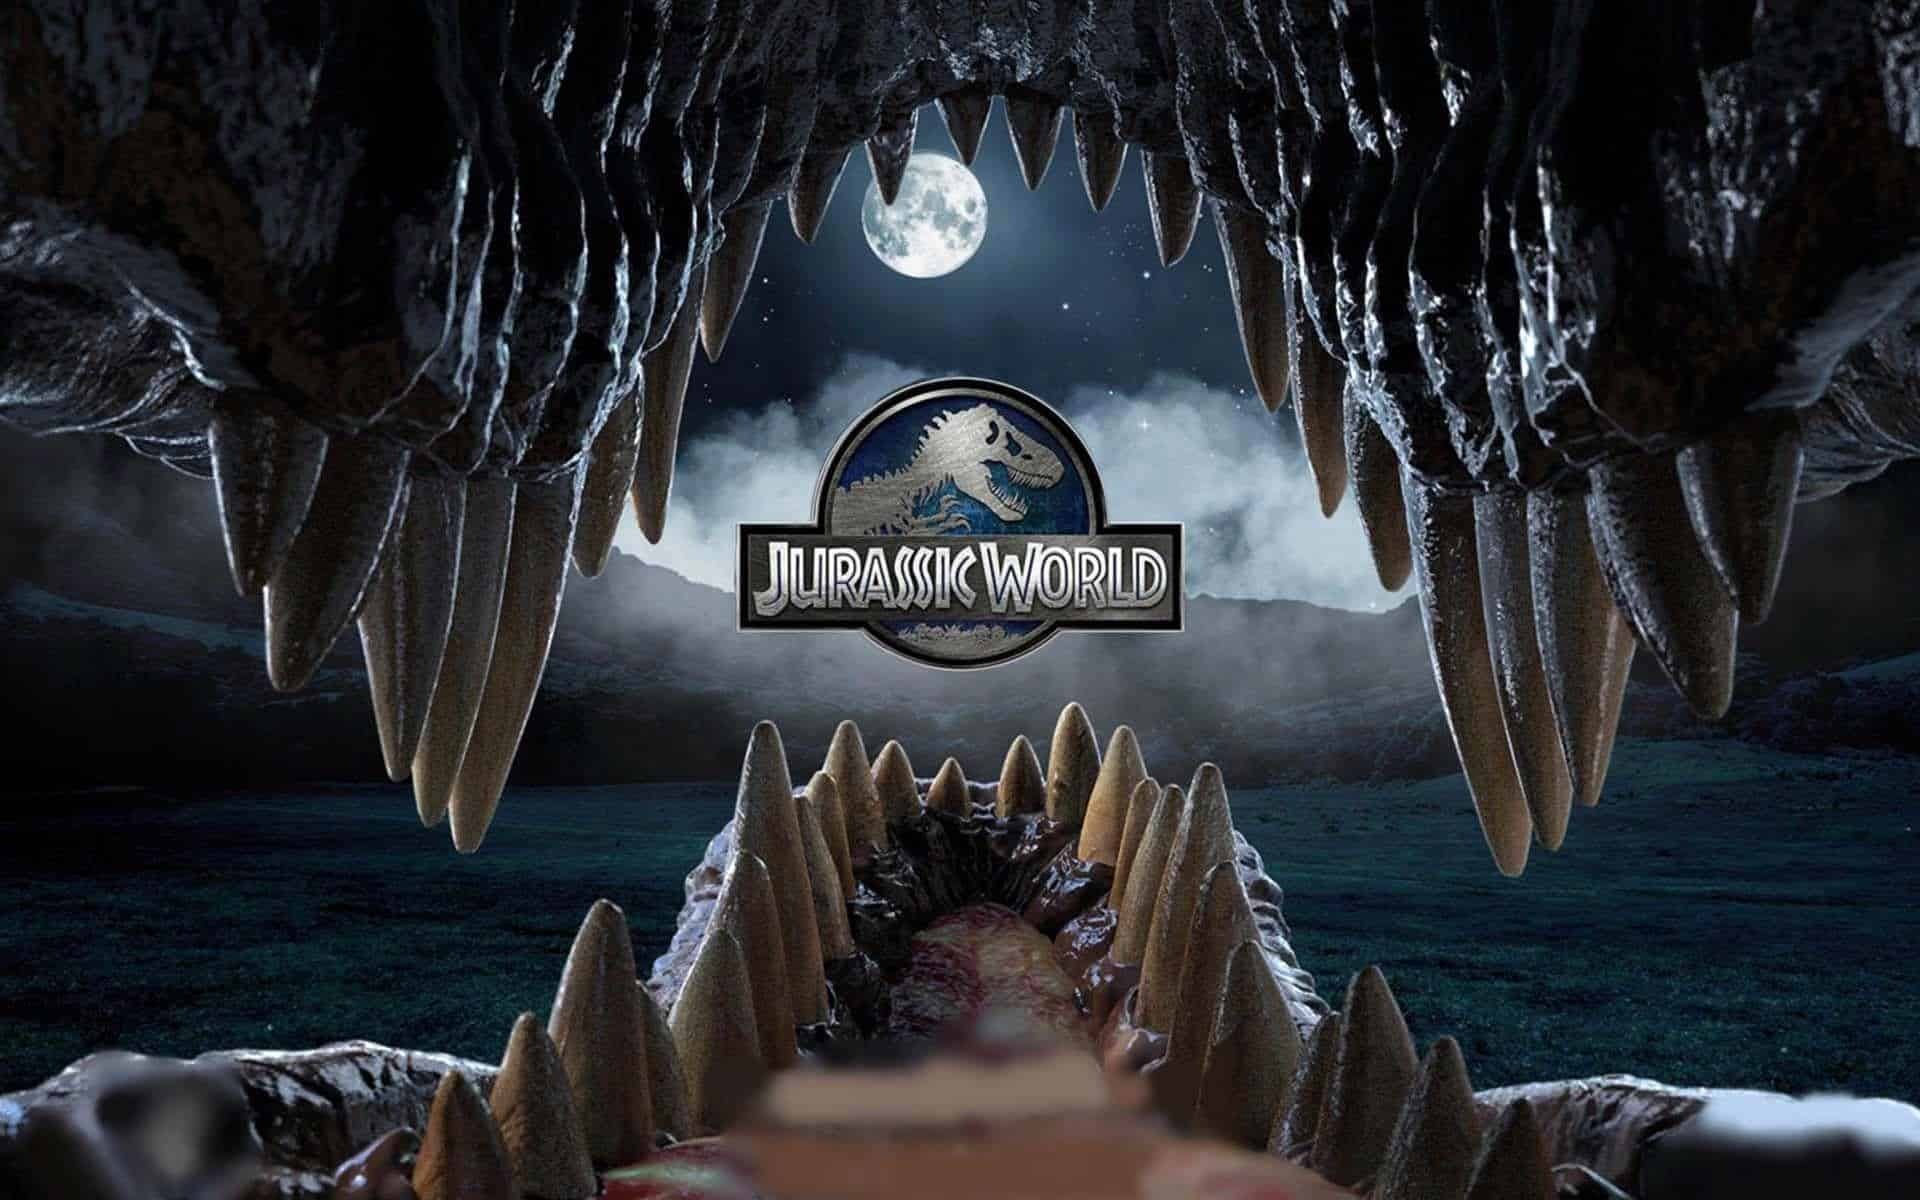 Jurassic World is arriving at Universal Studios Hollywood